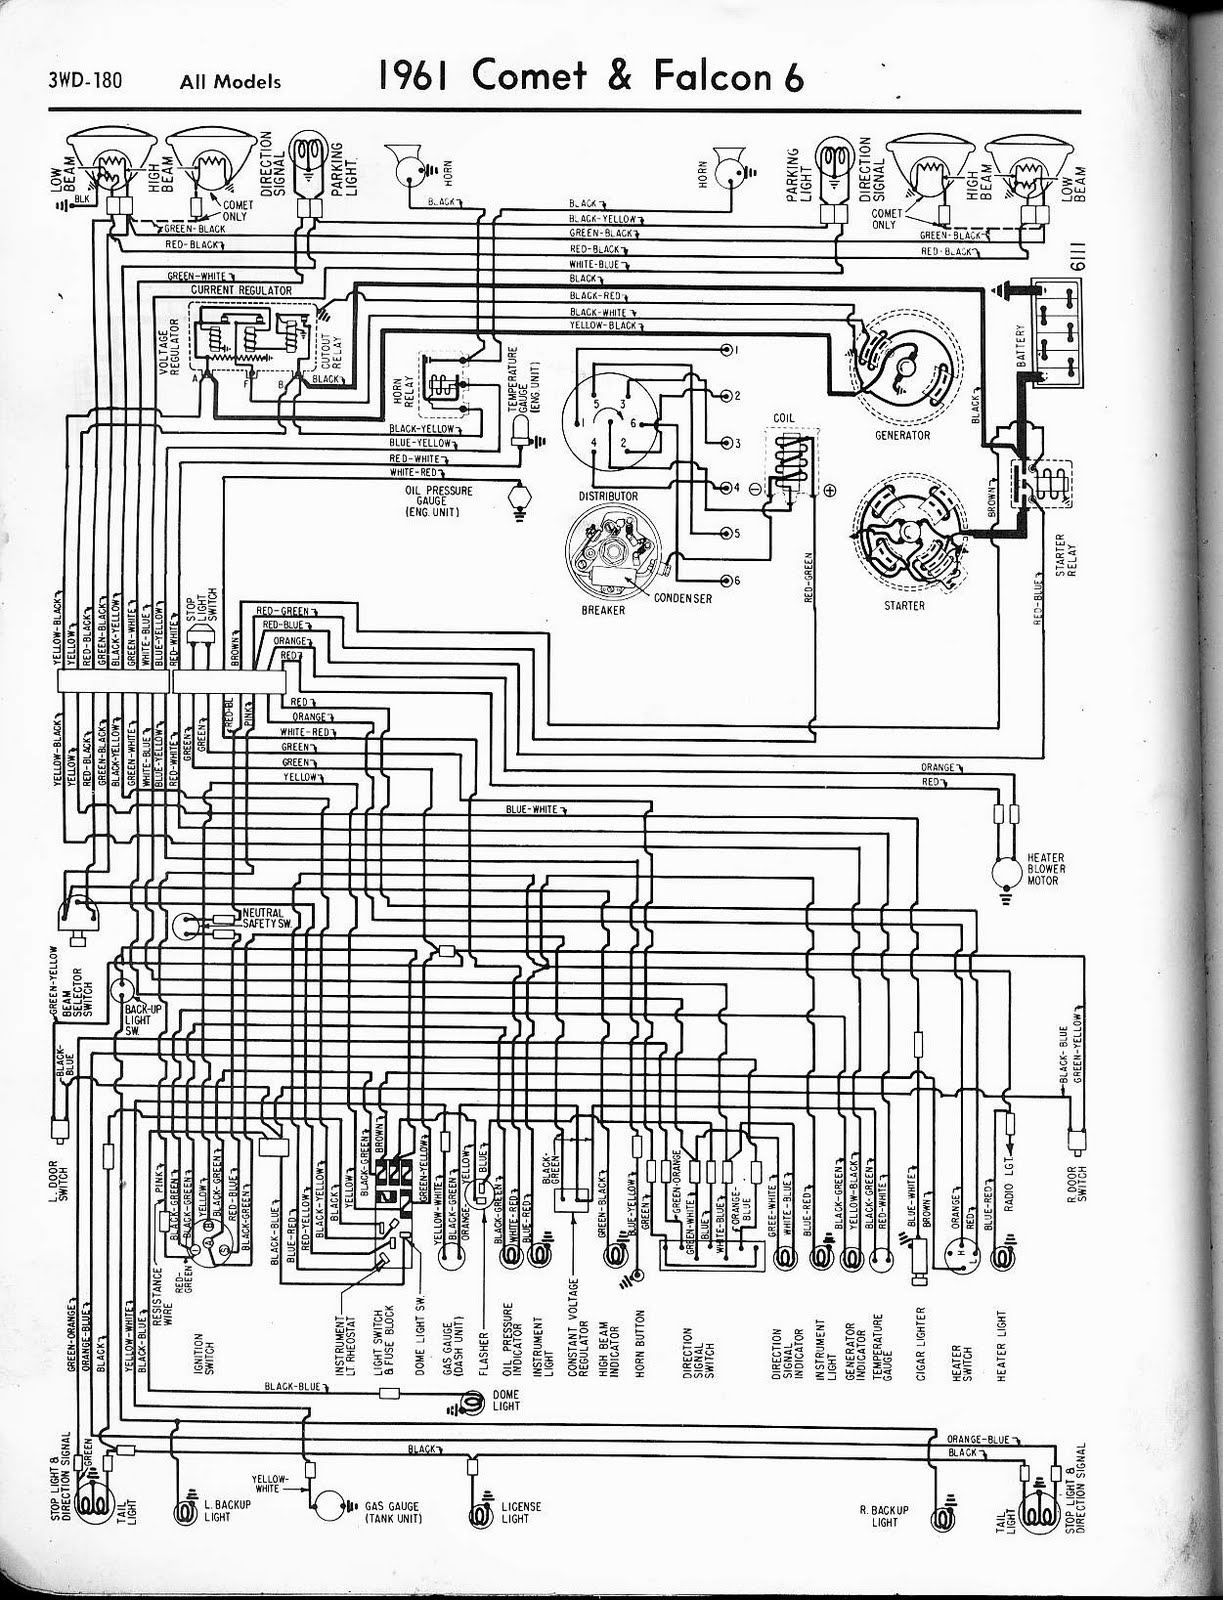 1961+Ford+Falcon+Comet+Wiring+Diagram schematic diagram wiring diagram of 1961 ford falcon au falcon wiring diagram stereo at eliteediting.co